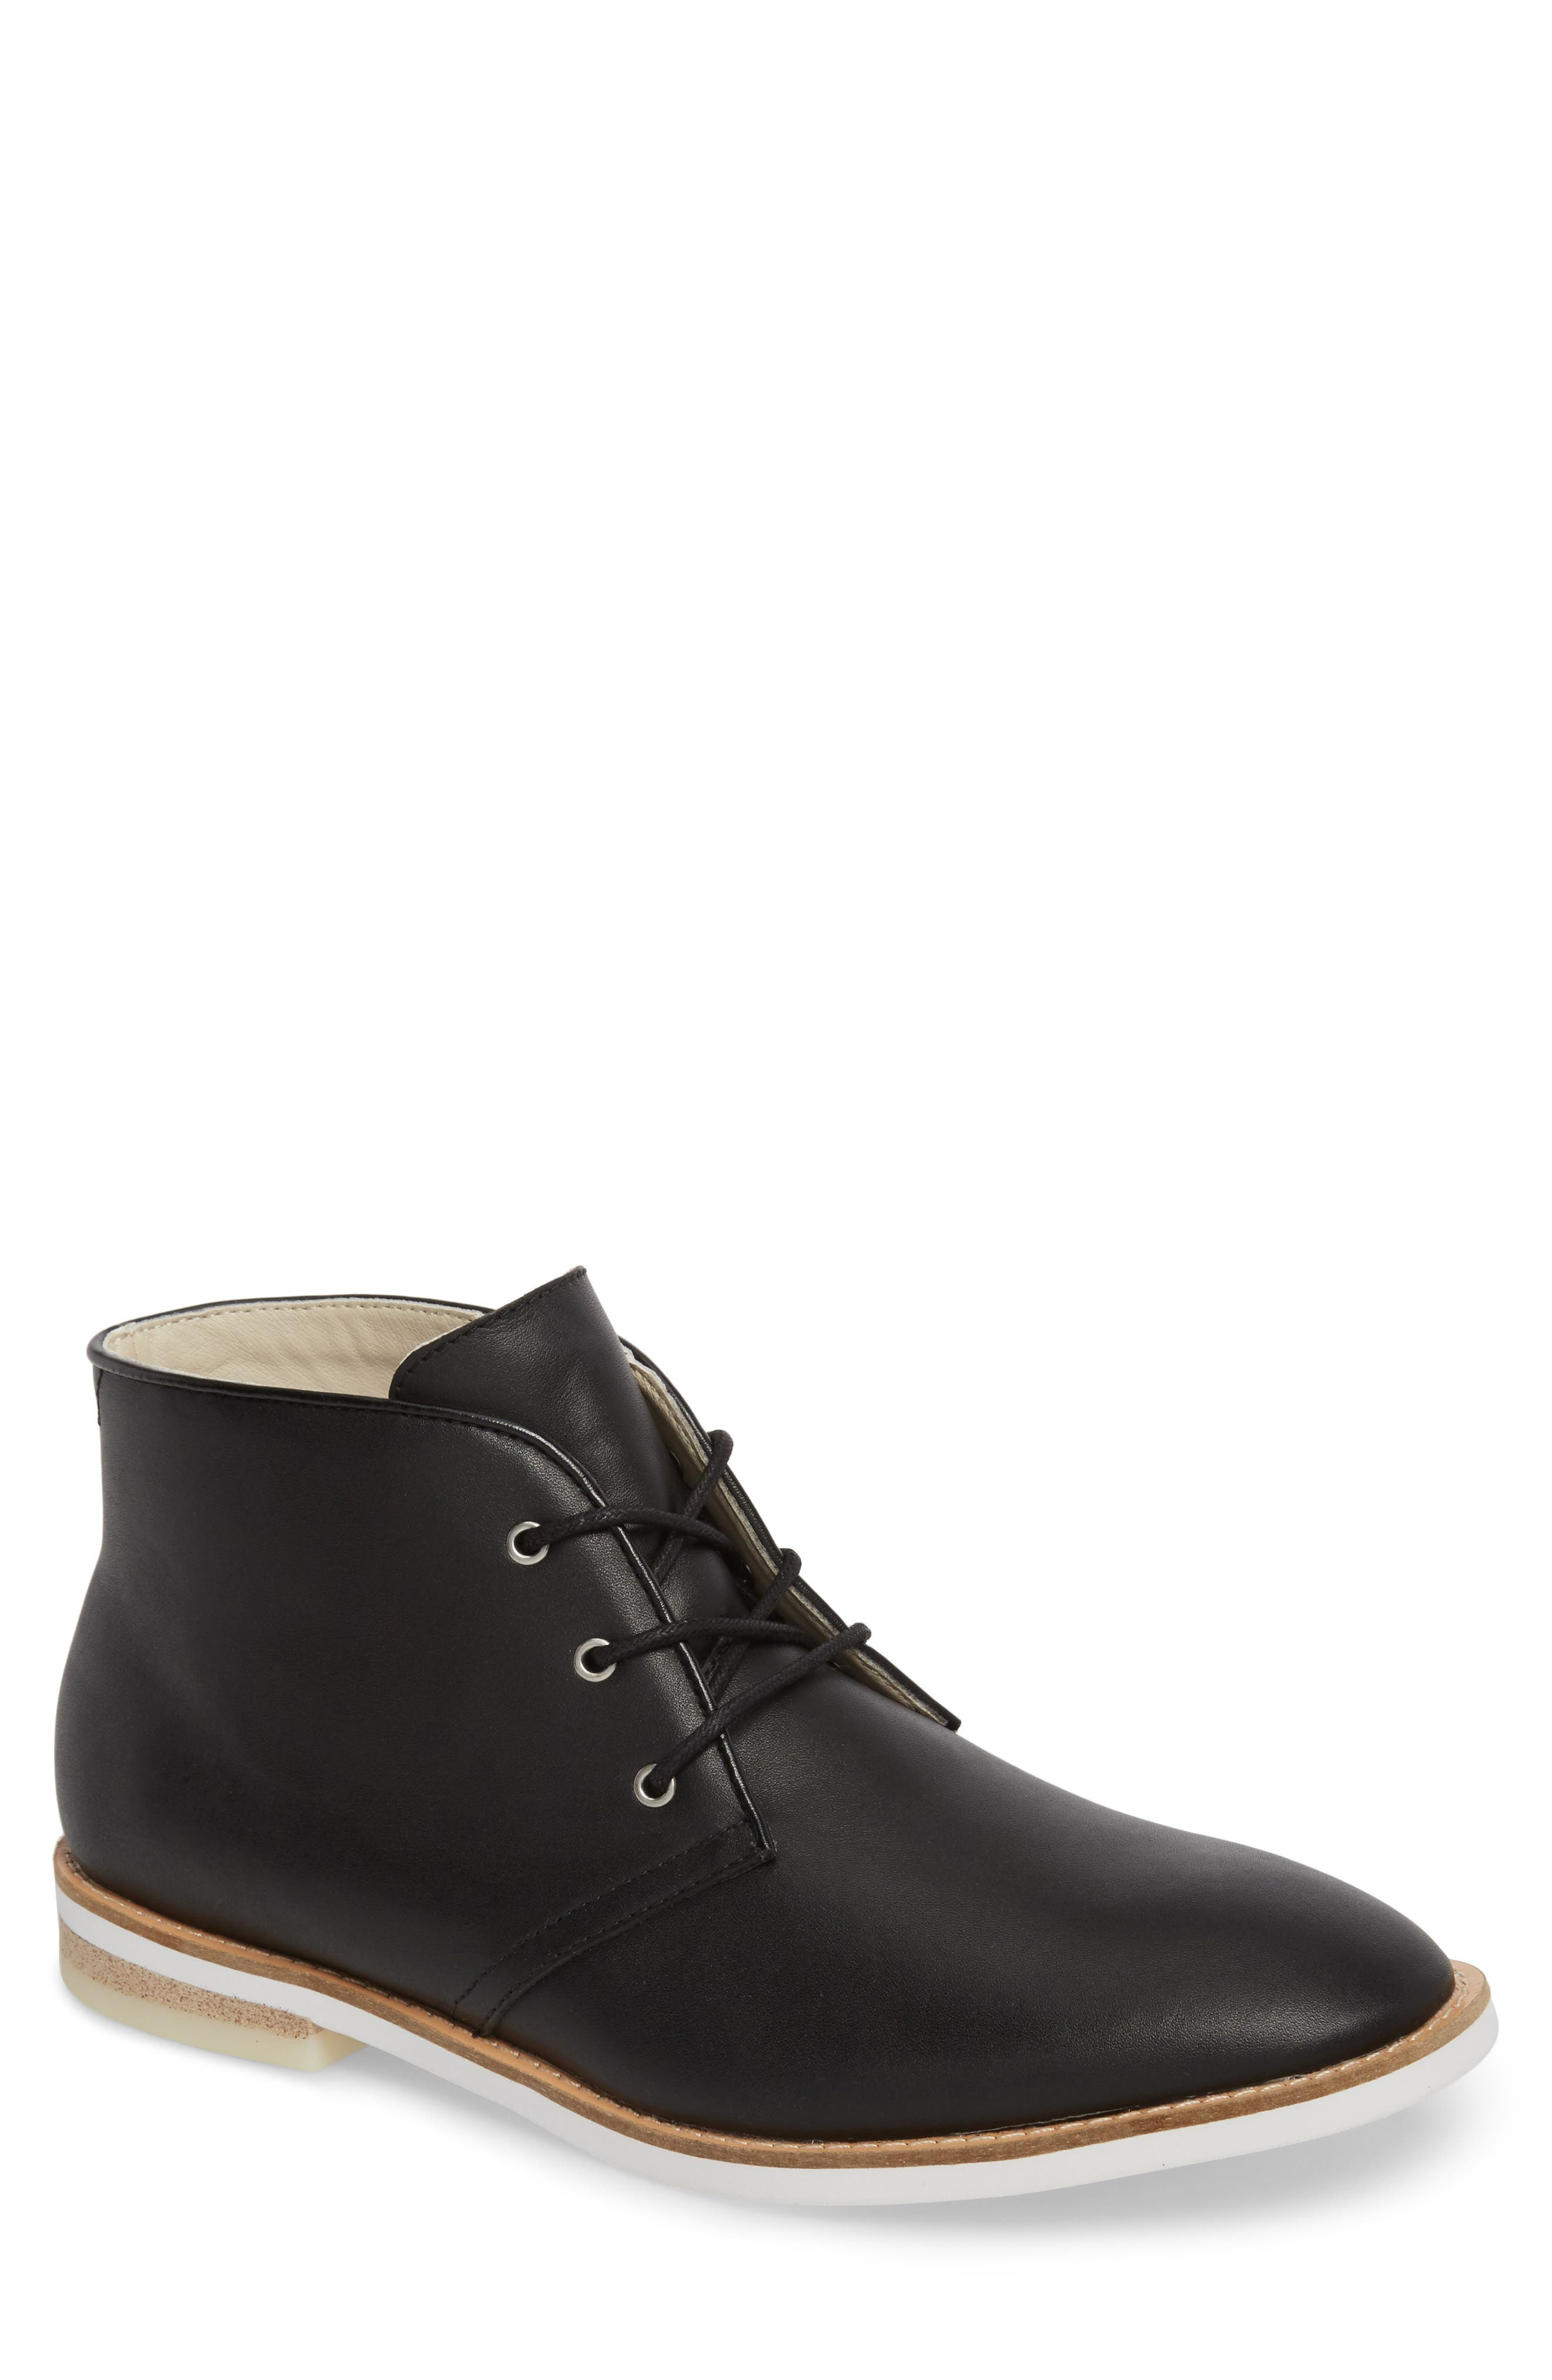 Albe Chukka Boot,                             Main thumbnail 1, color,                             Black Leather